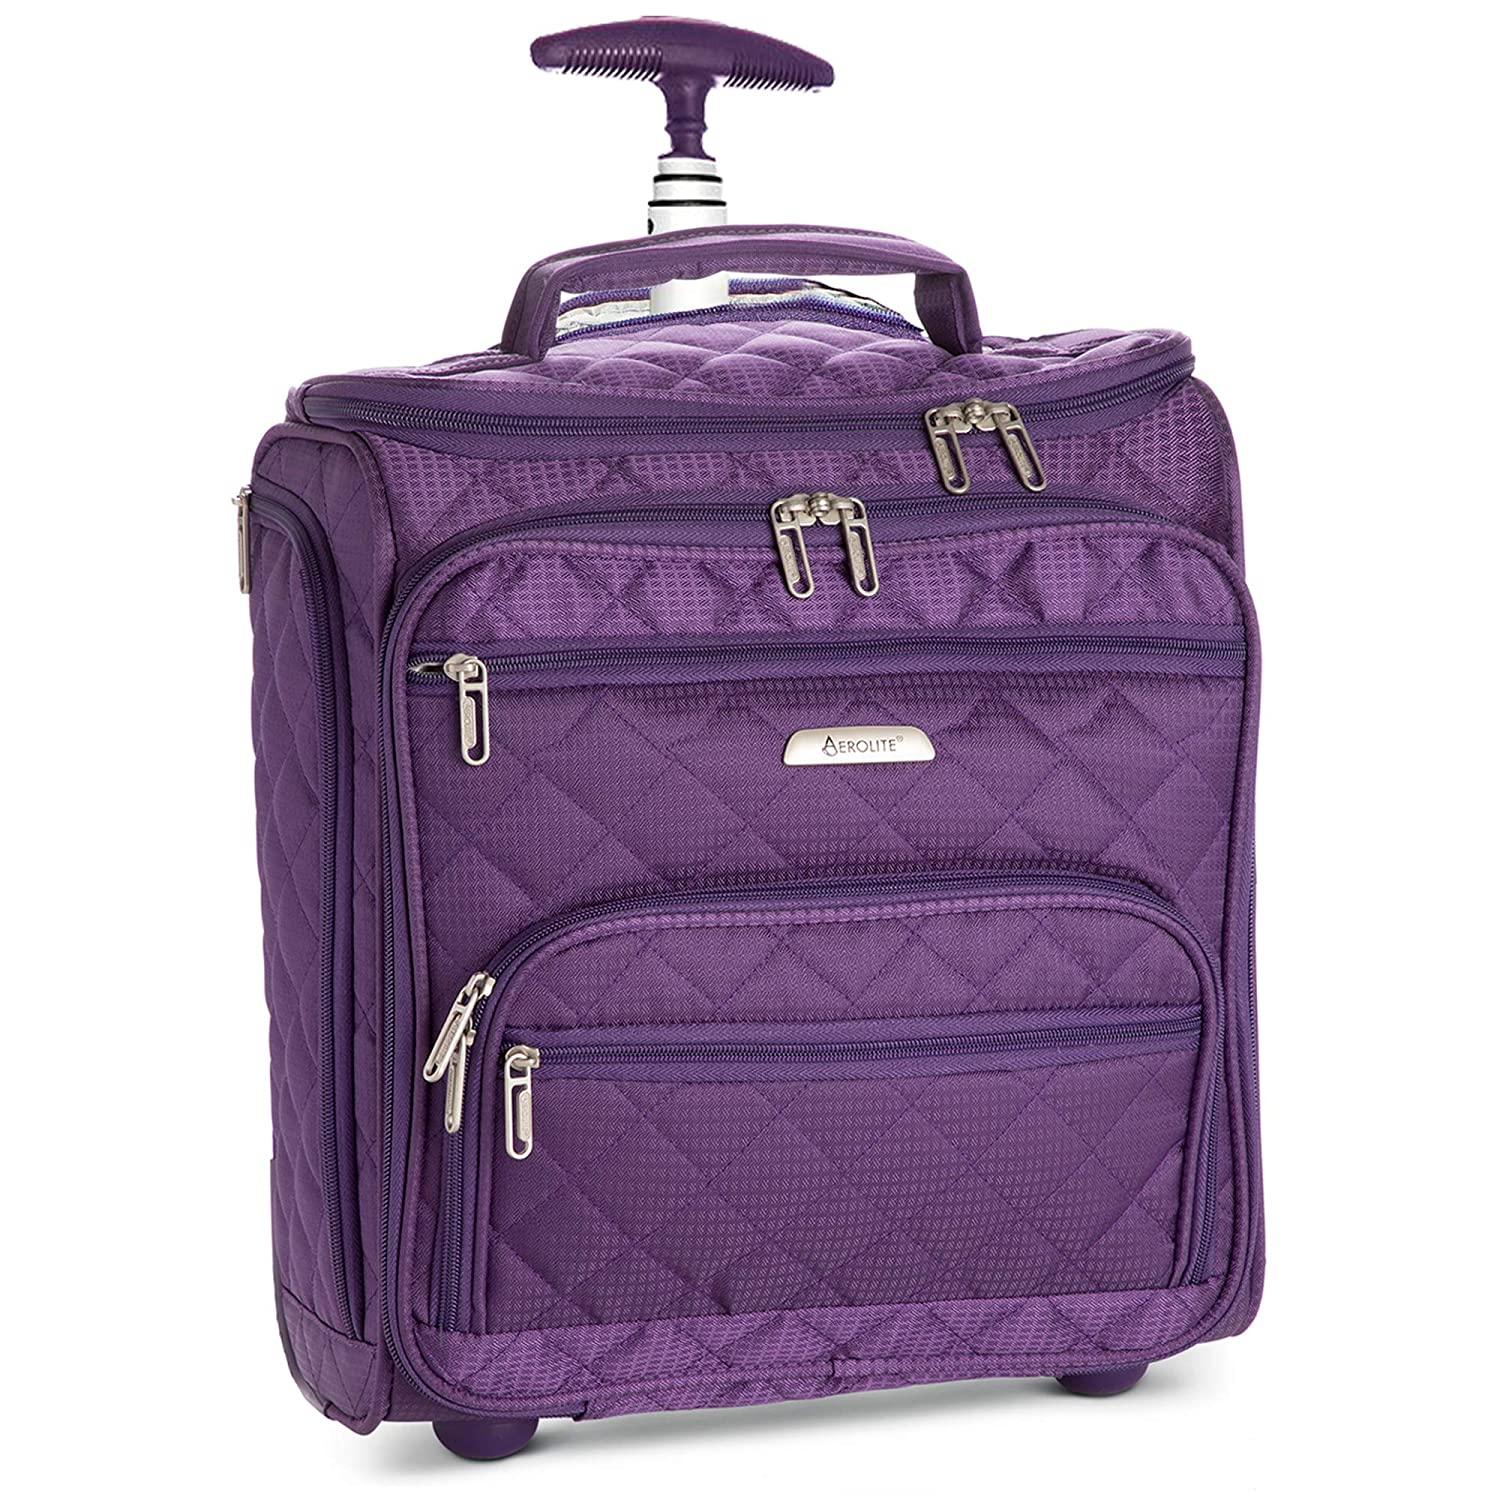 """16.5"""" Underseat Women Luggage Carry On Suitcase - Small Rolling Tote Bag with Wheels (Purple)"""